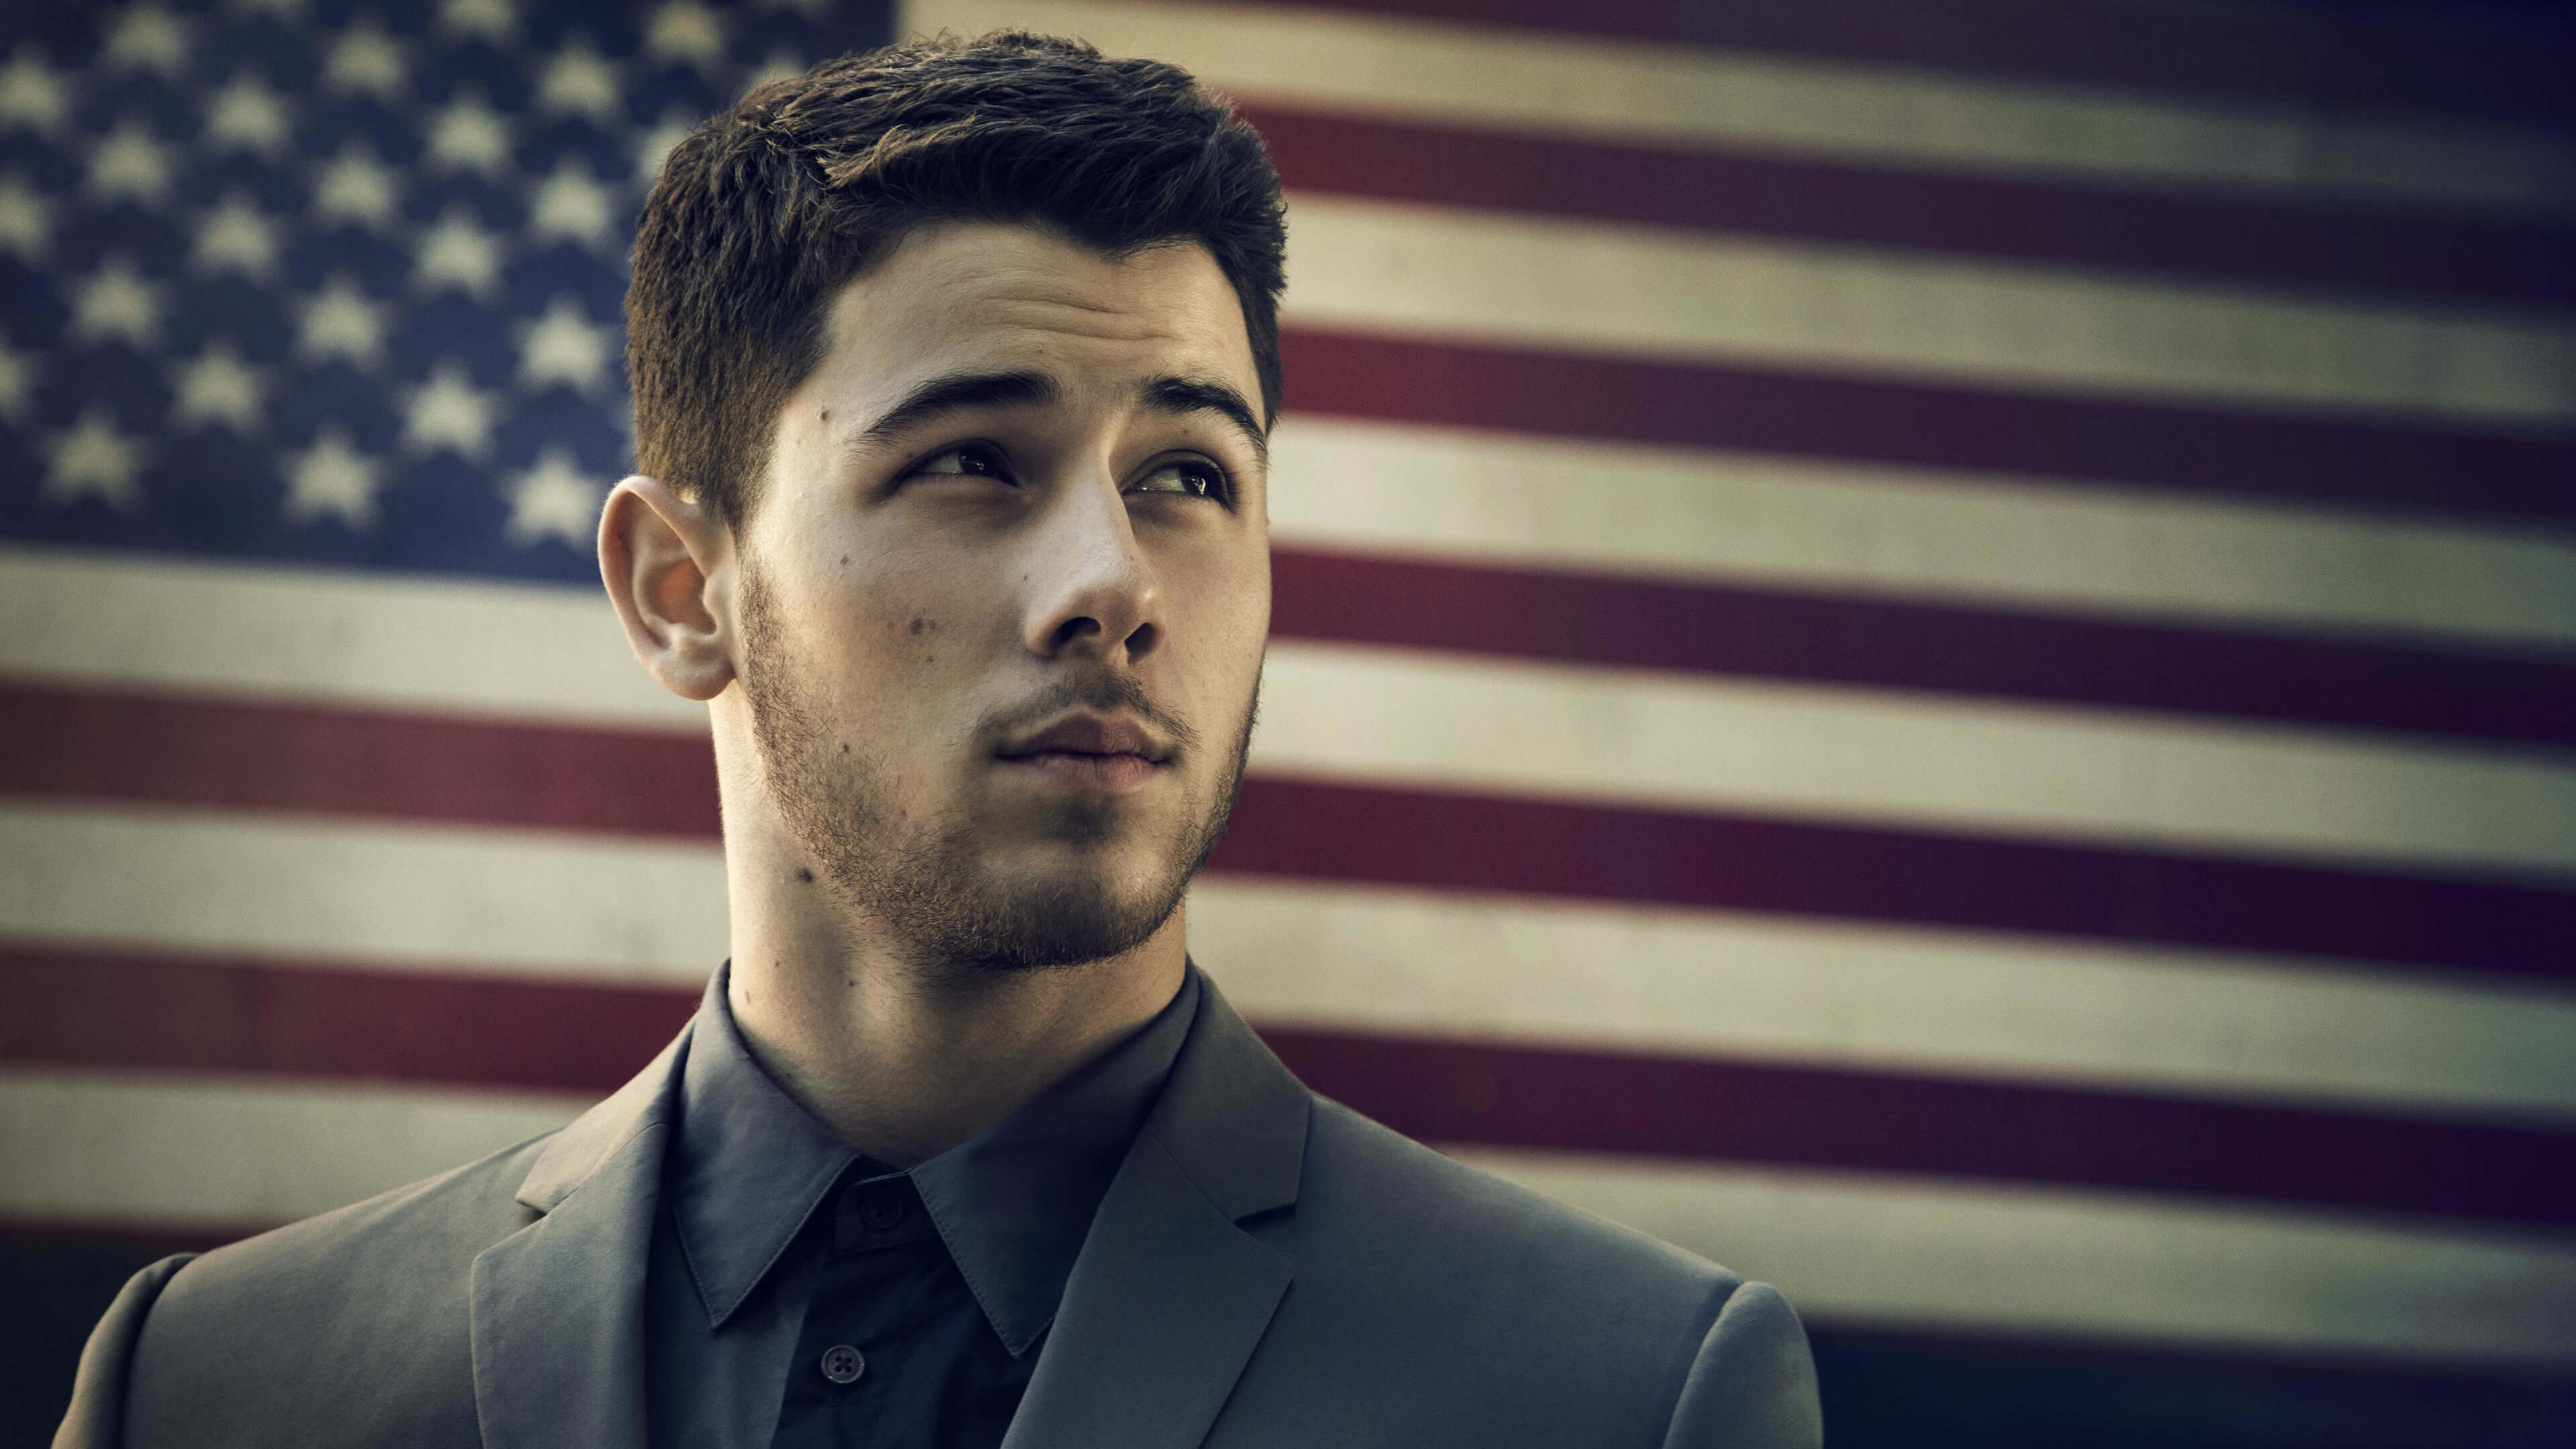 Nick Jonas Wallpapers High Resolution and Quality Download